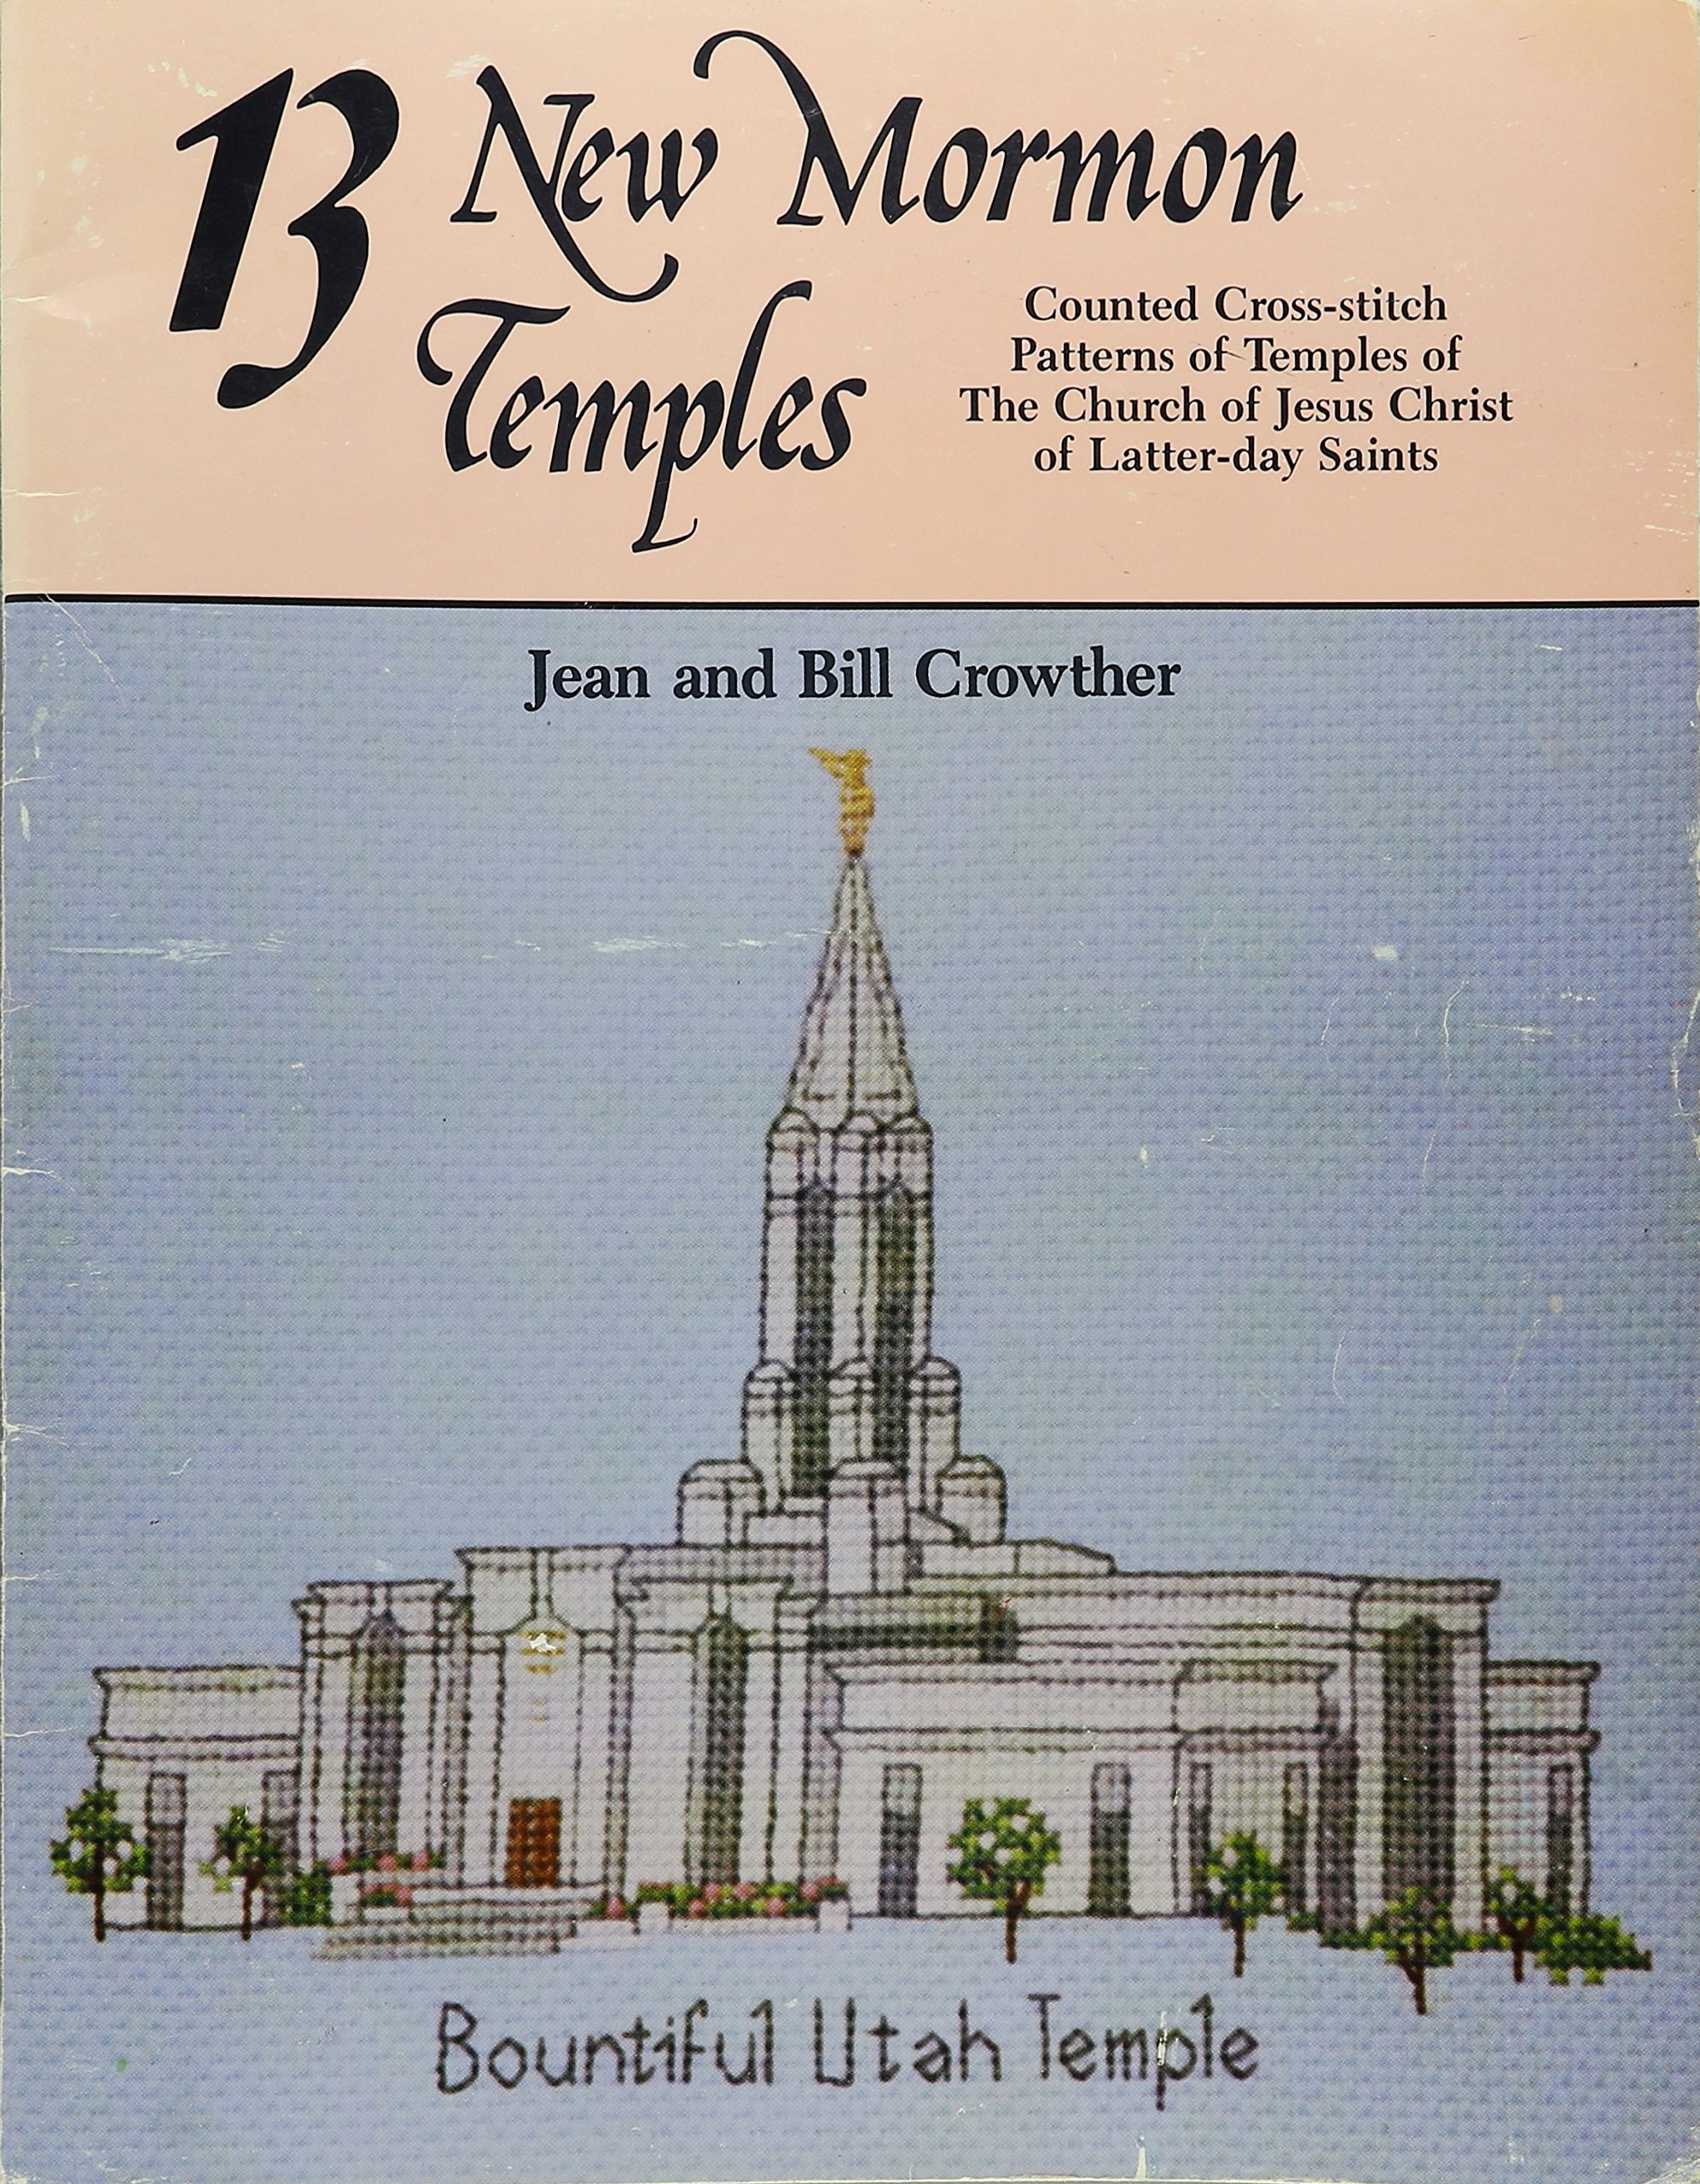 13 New Mormon Temples: Counted Cross-stitch Patterns of Temples of The Church of Jesus Christ of Latter-Day Saints Paperback – 1992 Horizon Publishers an Imprint of Cedar Fort Inc B0012ZM4RE